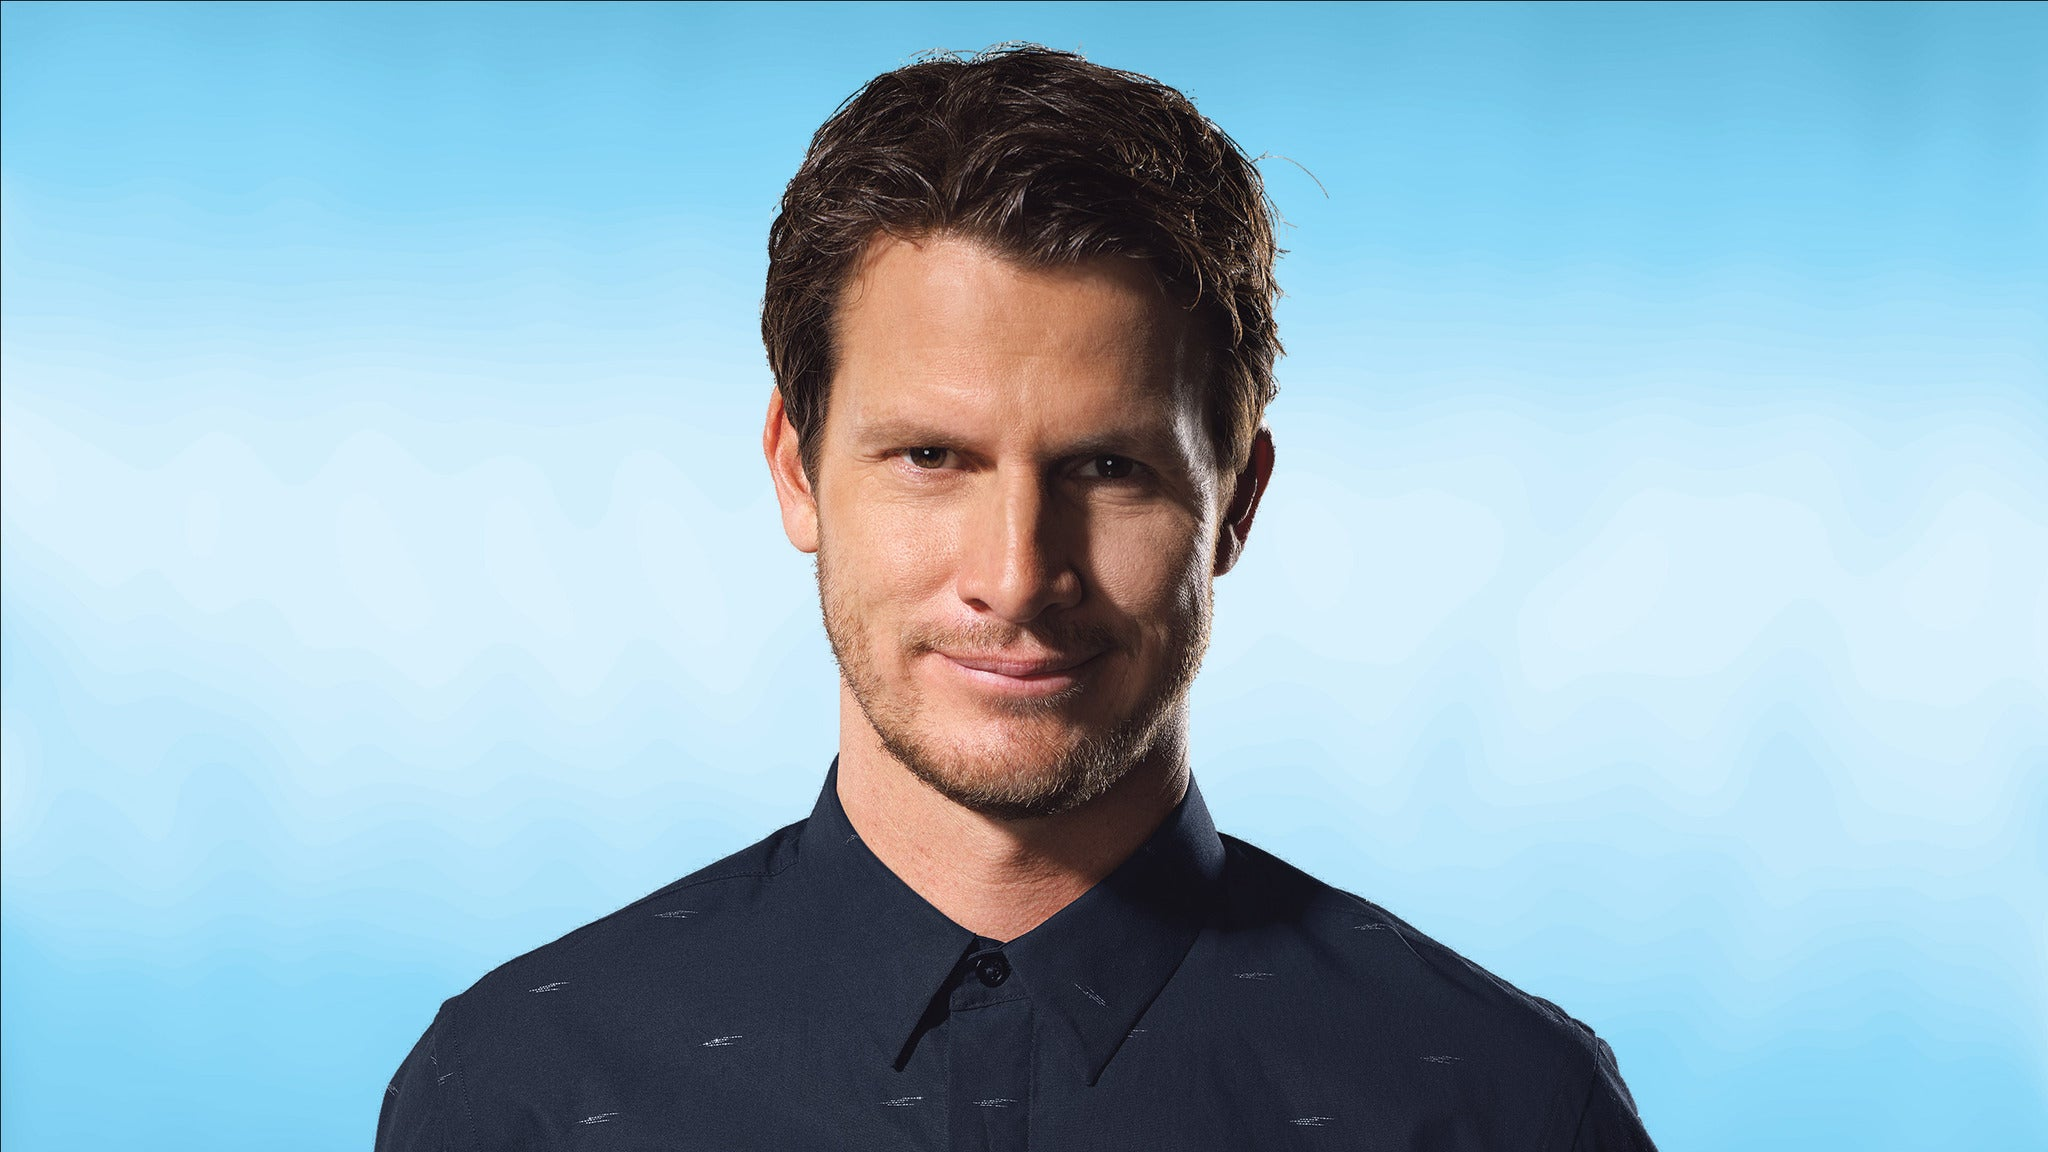 Daniel Tosh Live at Golden State Theatre